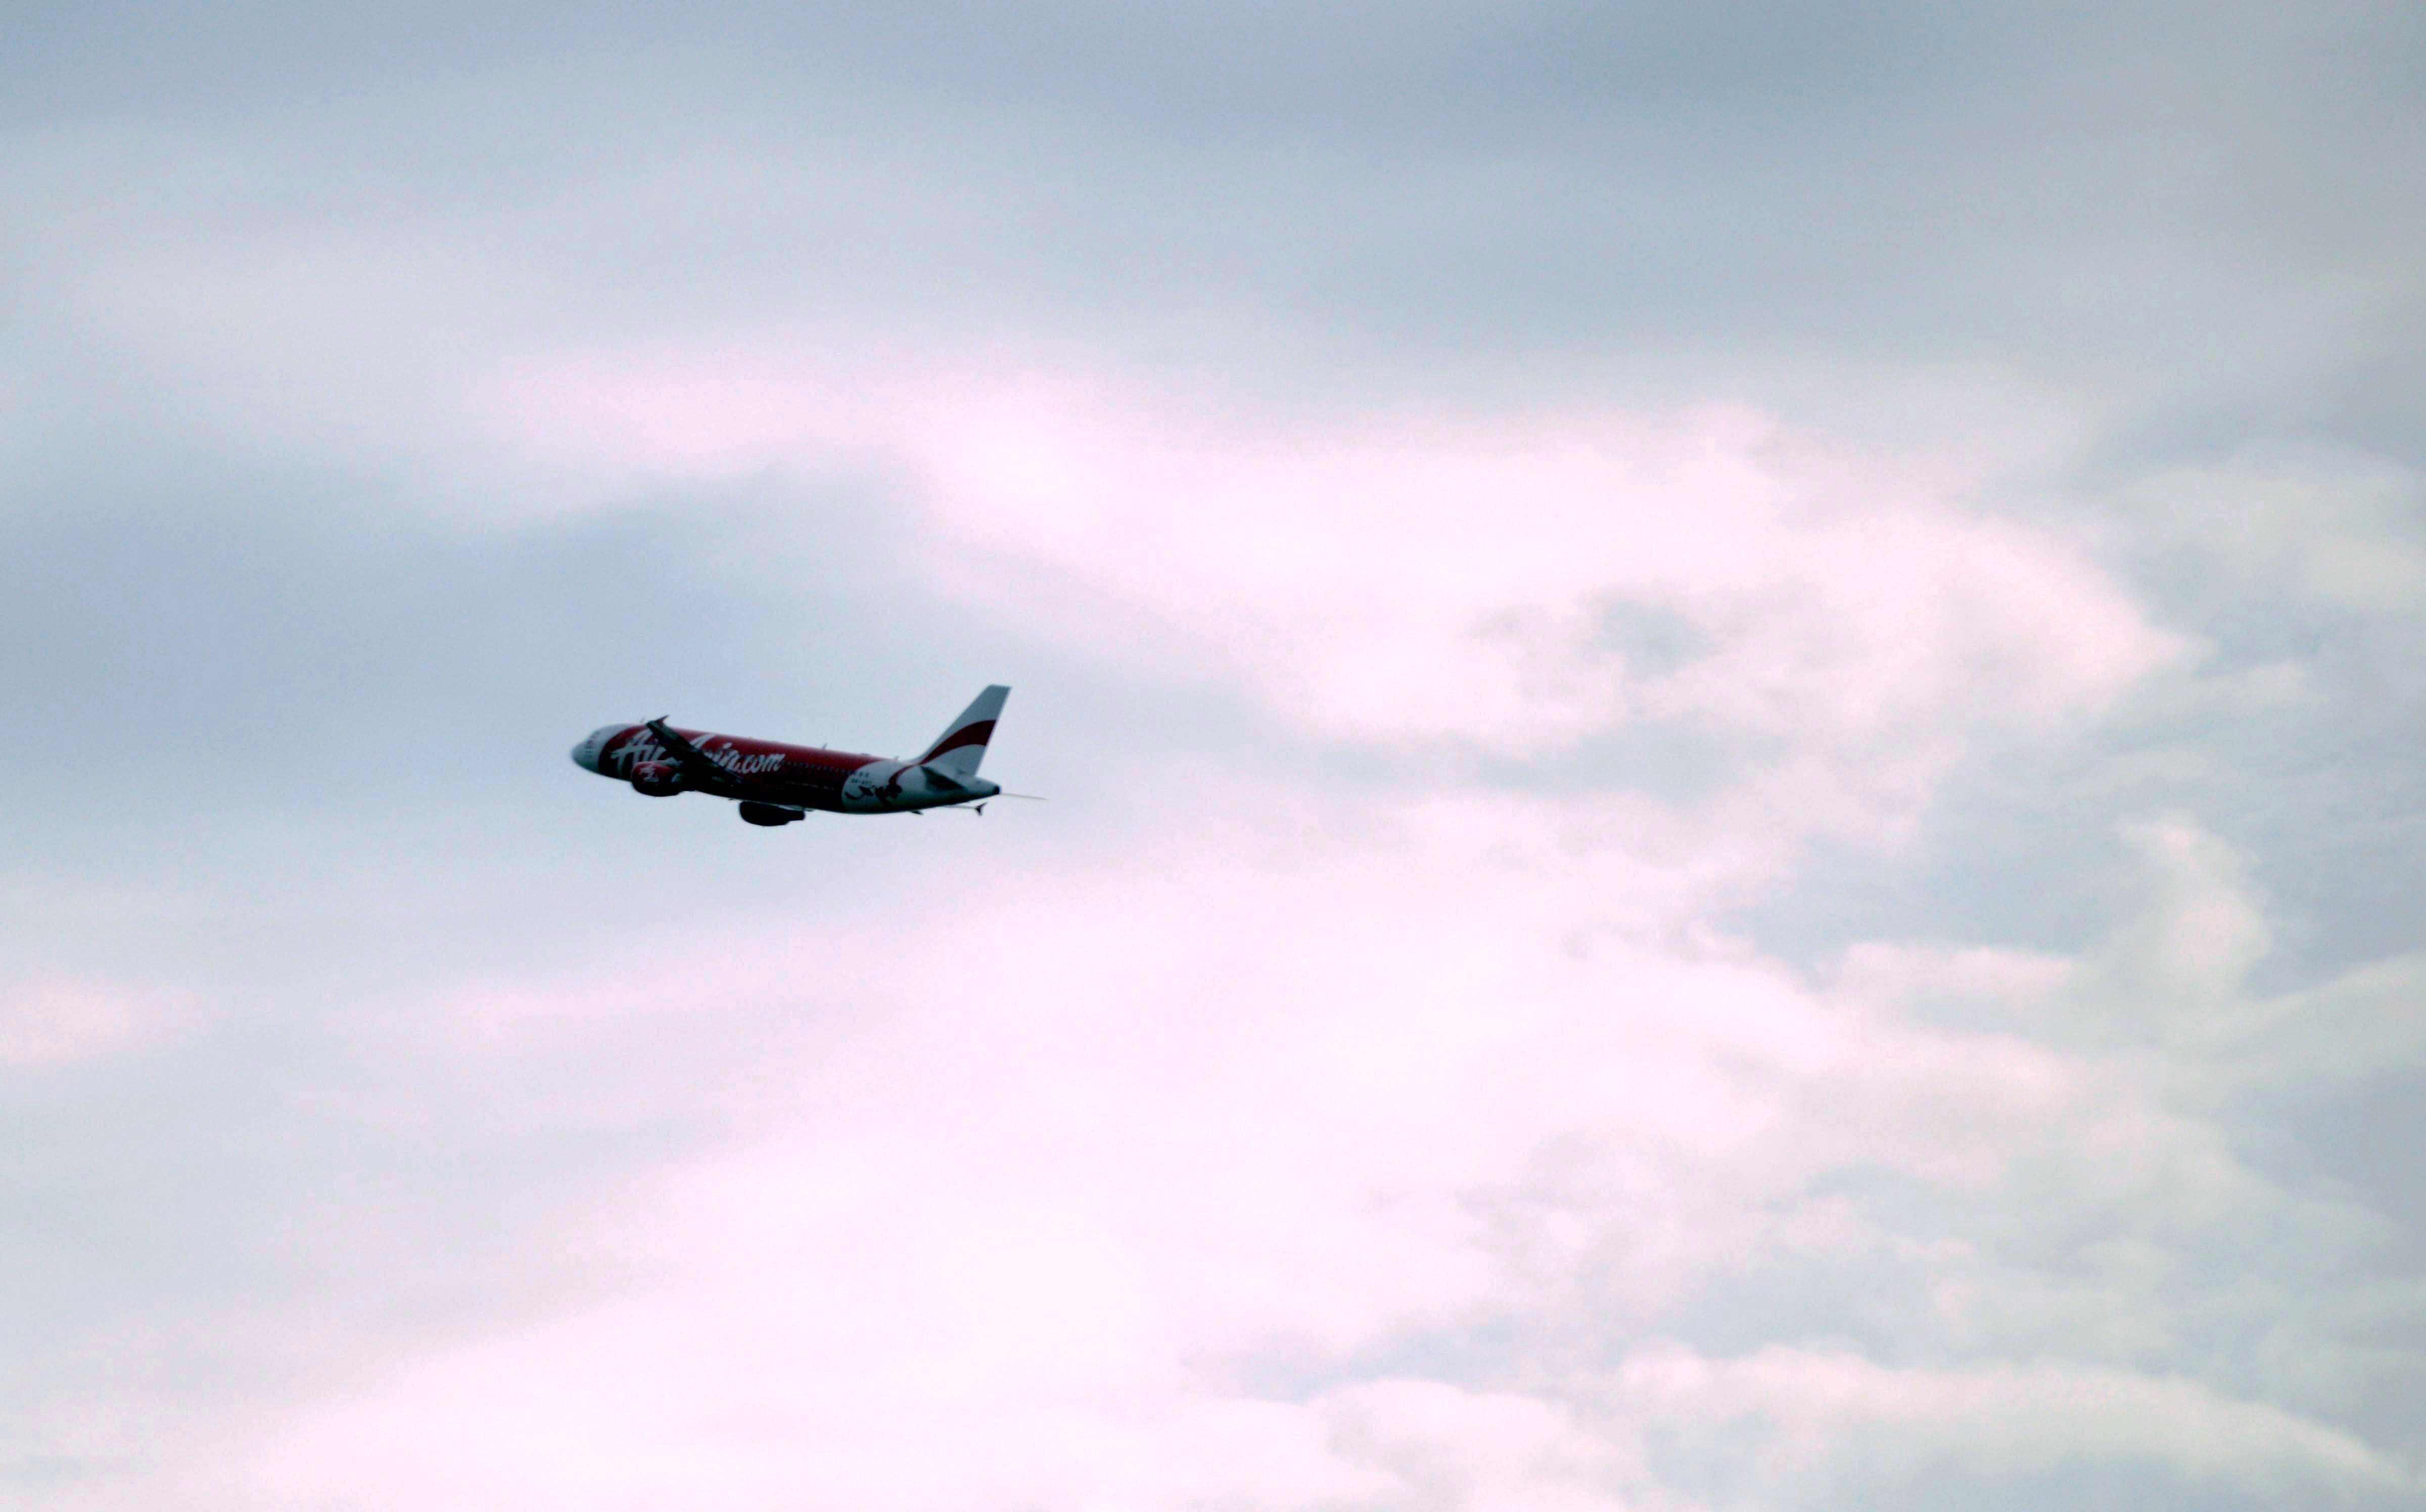 An AirAsia plane takes off from terminal 1 at Changi international airport in Singapore on December 29, 2014. (AFP)